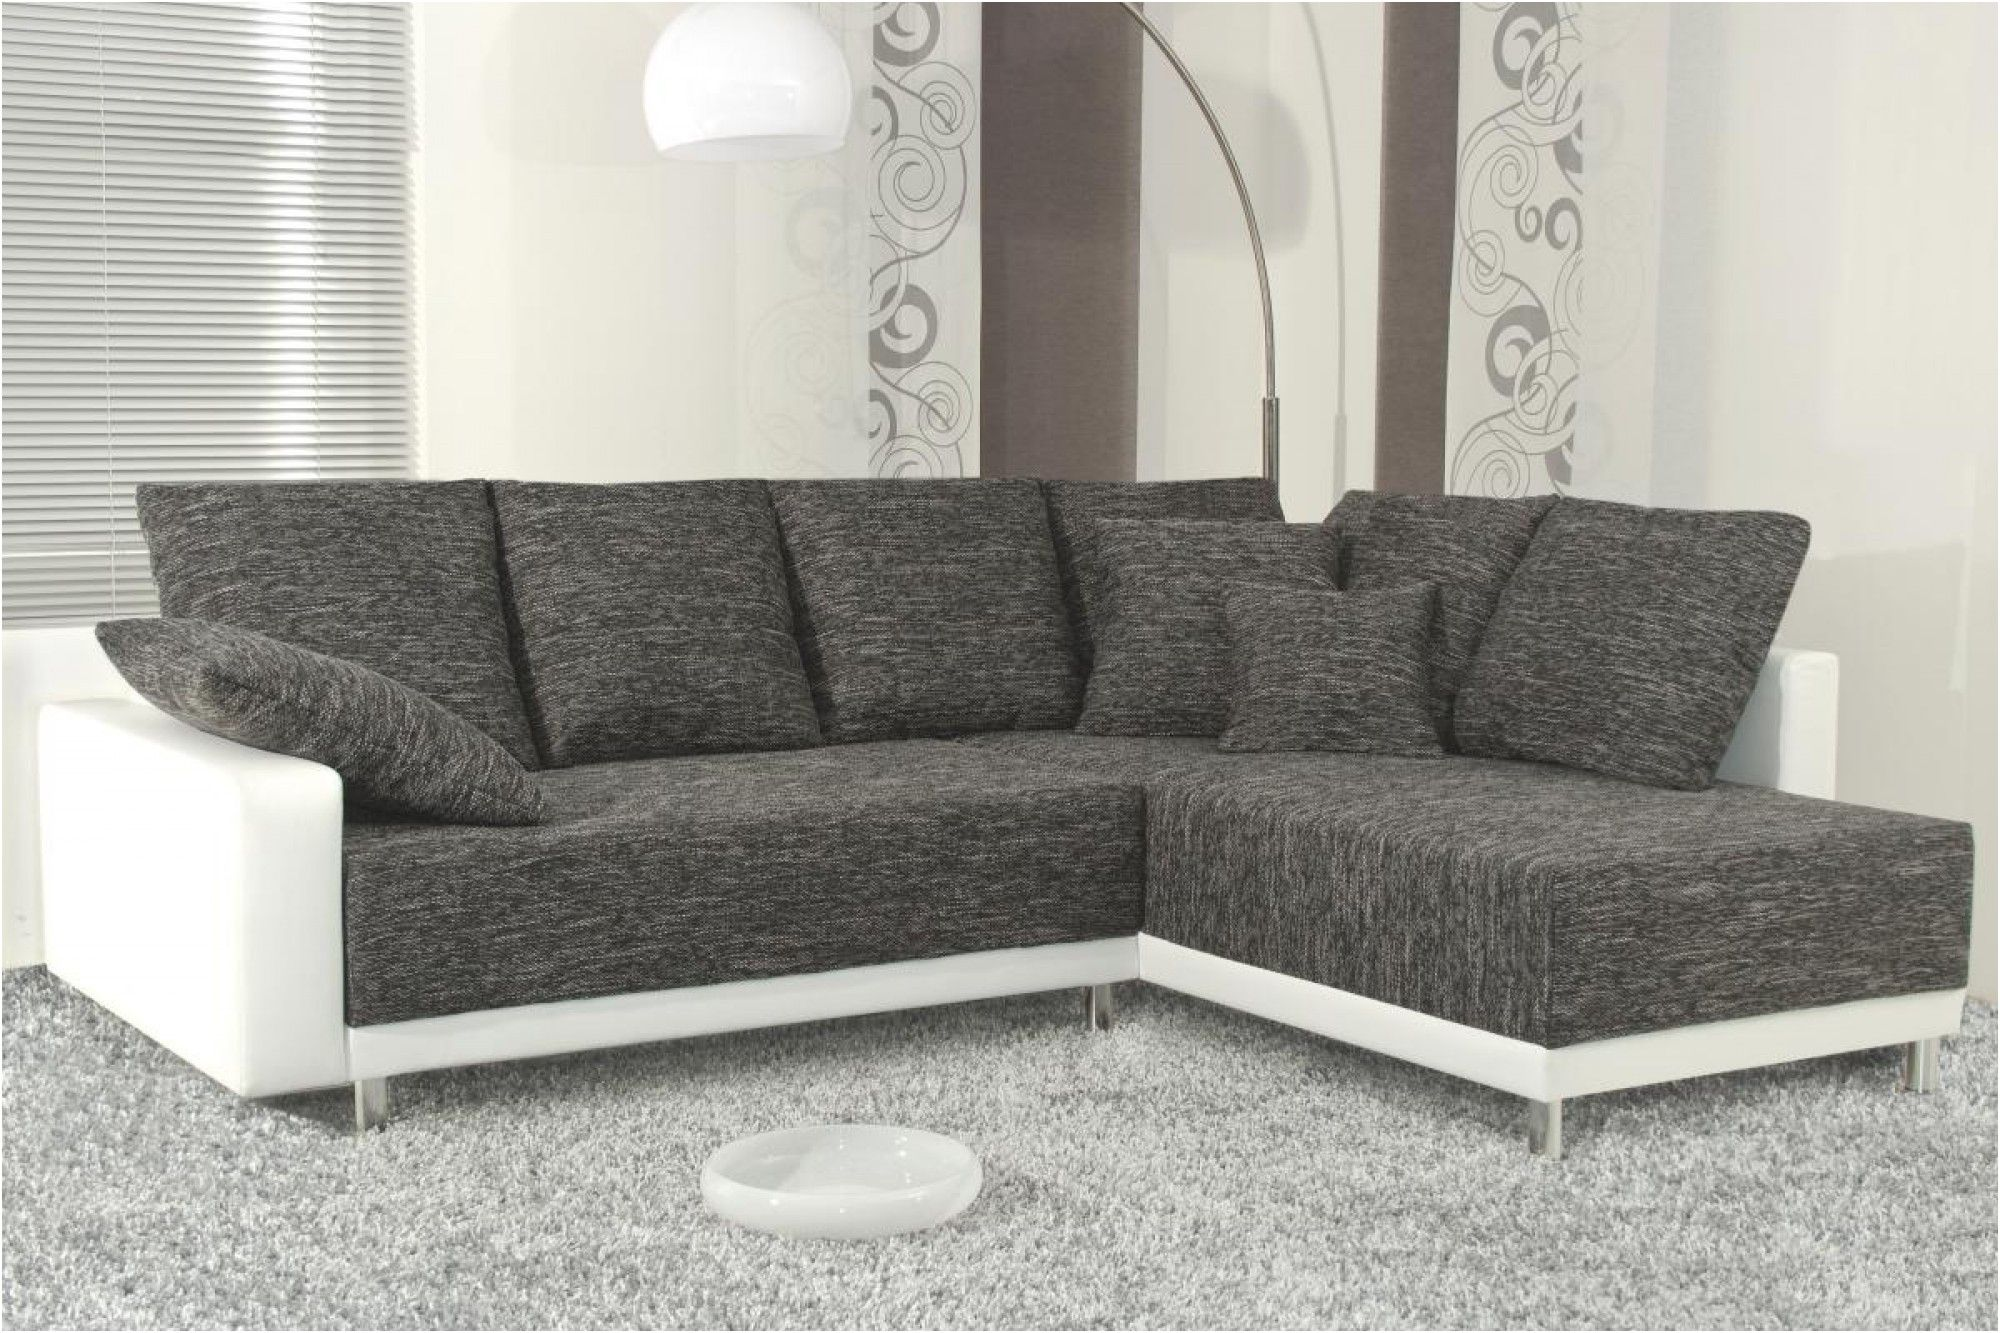 Big Couch In 2020 Big Sofas Leather Couches Living Room Modern Couch